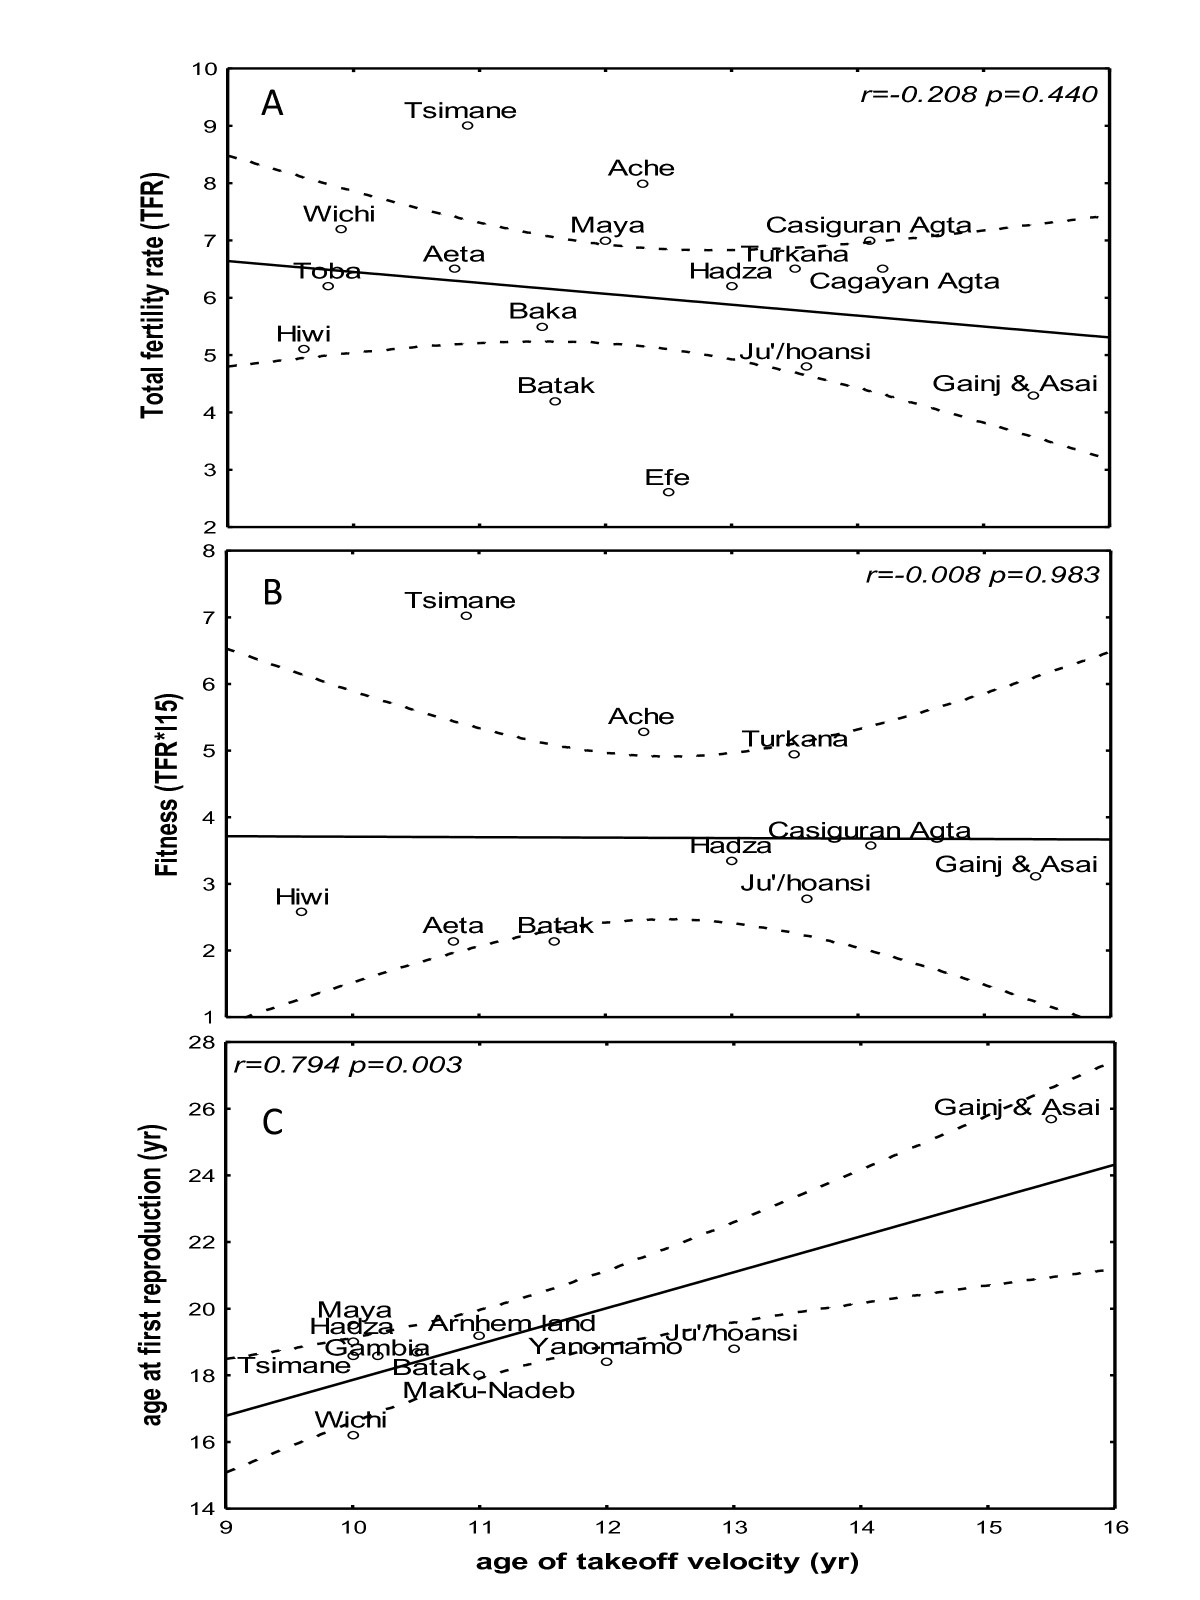 https://static-content.springer.com/image/art%3A10.1186%2F1687-9856-2011-2/MediaObjects/13633_2011_Article_1_Fig2_HTML.jpg